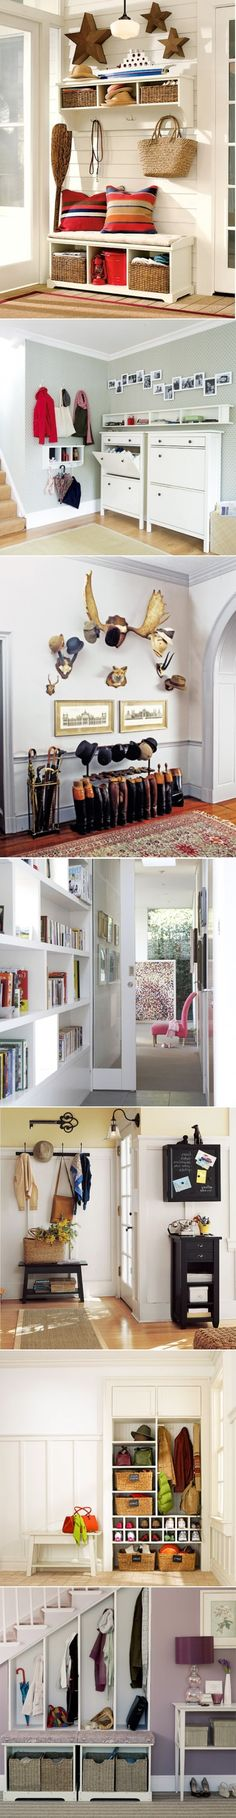 DIY Mudroom And Hallway Storage Ideas-EXCEPT DE HORRIBLE  TROPHY HUNTING